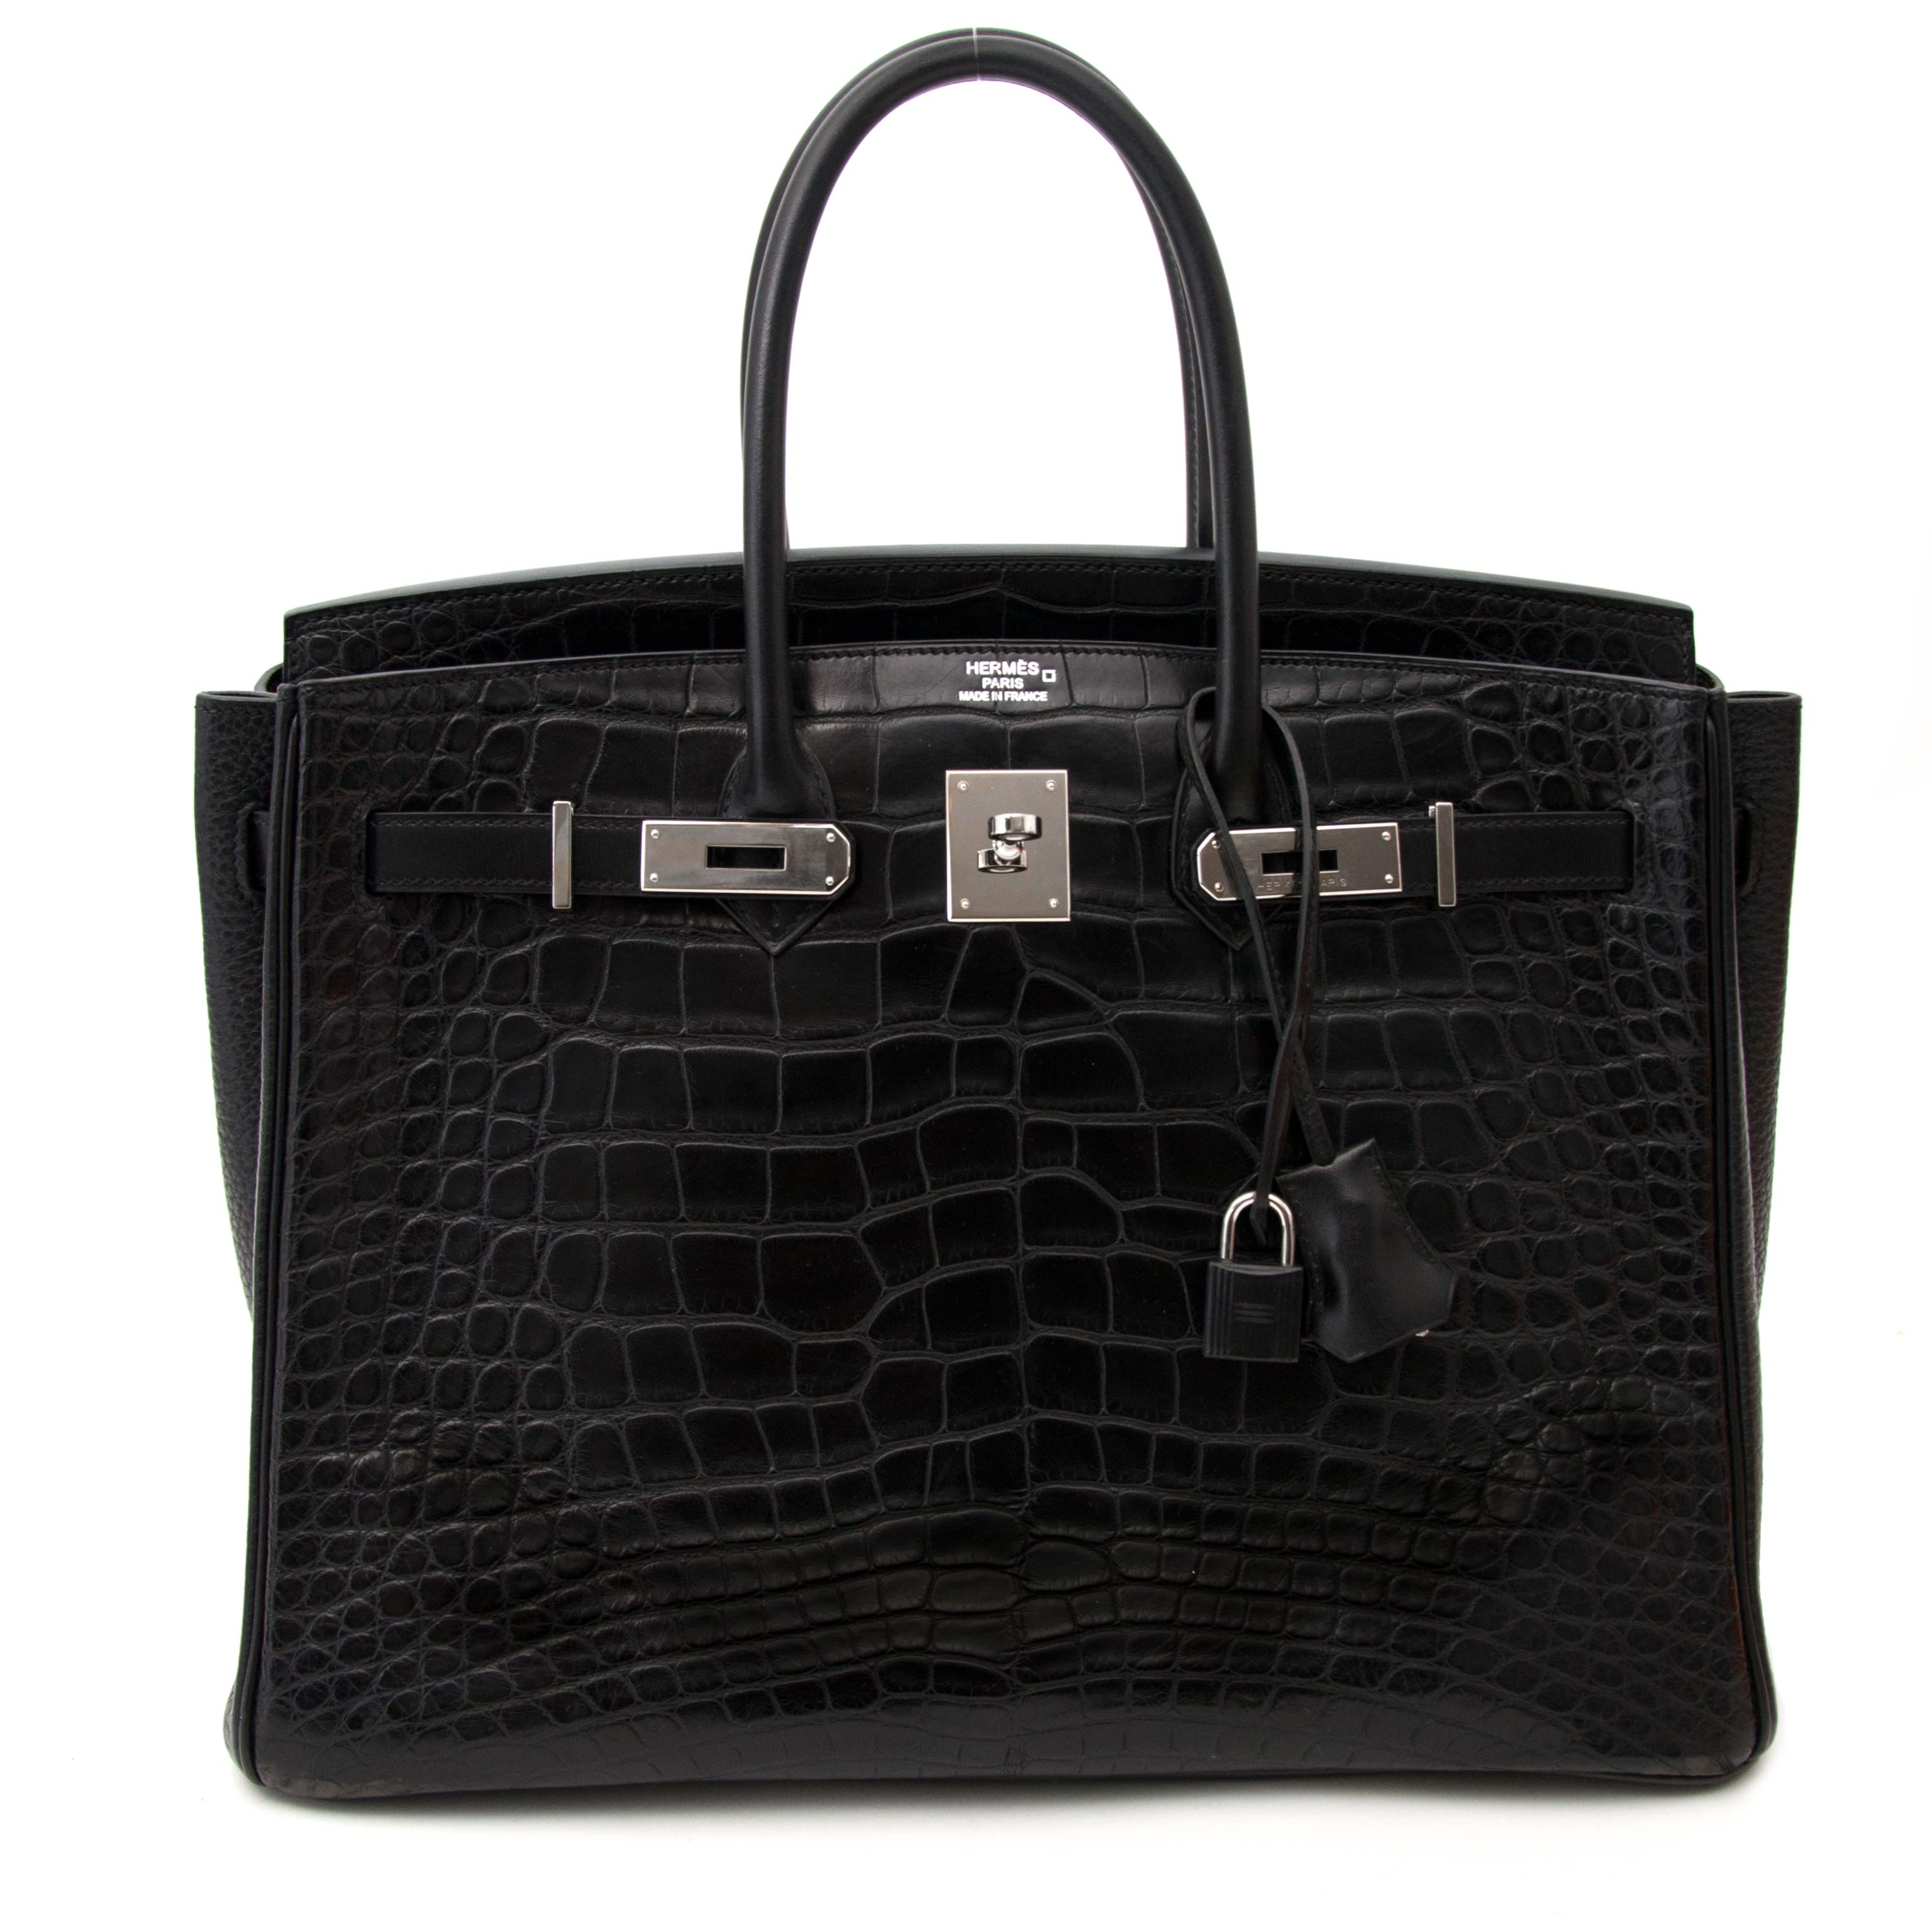 extremely rare hard to find 100ù authentic invoice included Super Rare Hermes Black Birkin 35 Three Skin  (Alligator, Clemence Taurillon, BoxCalf)